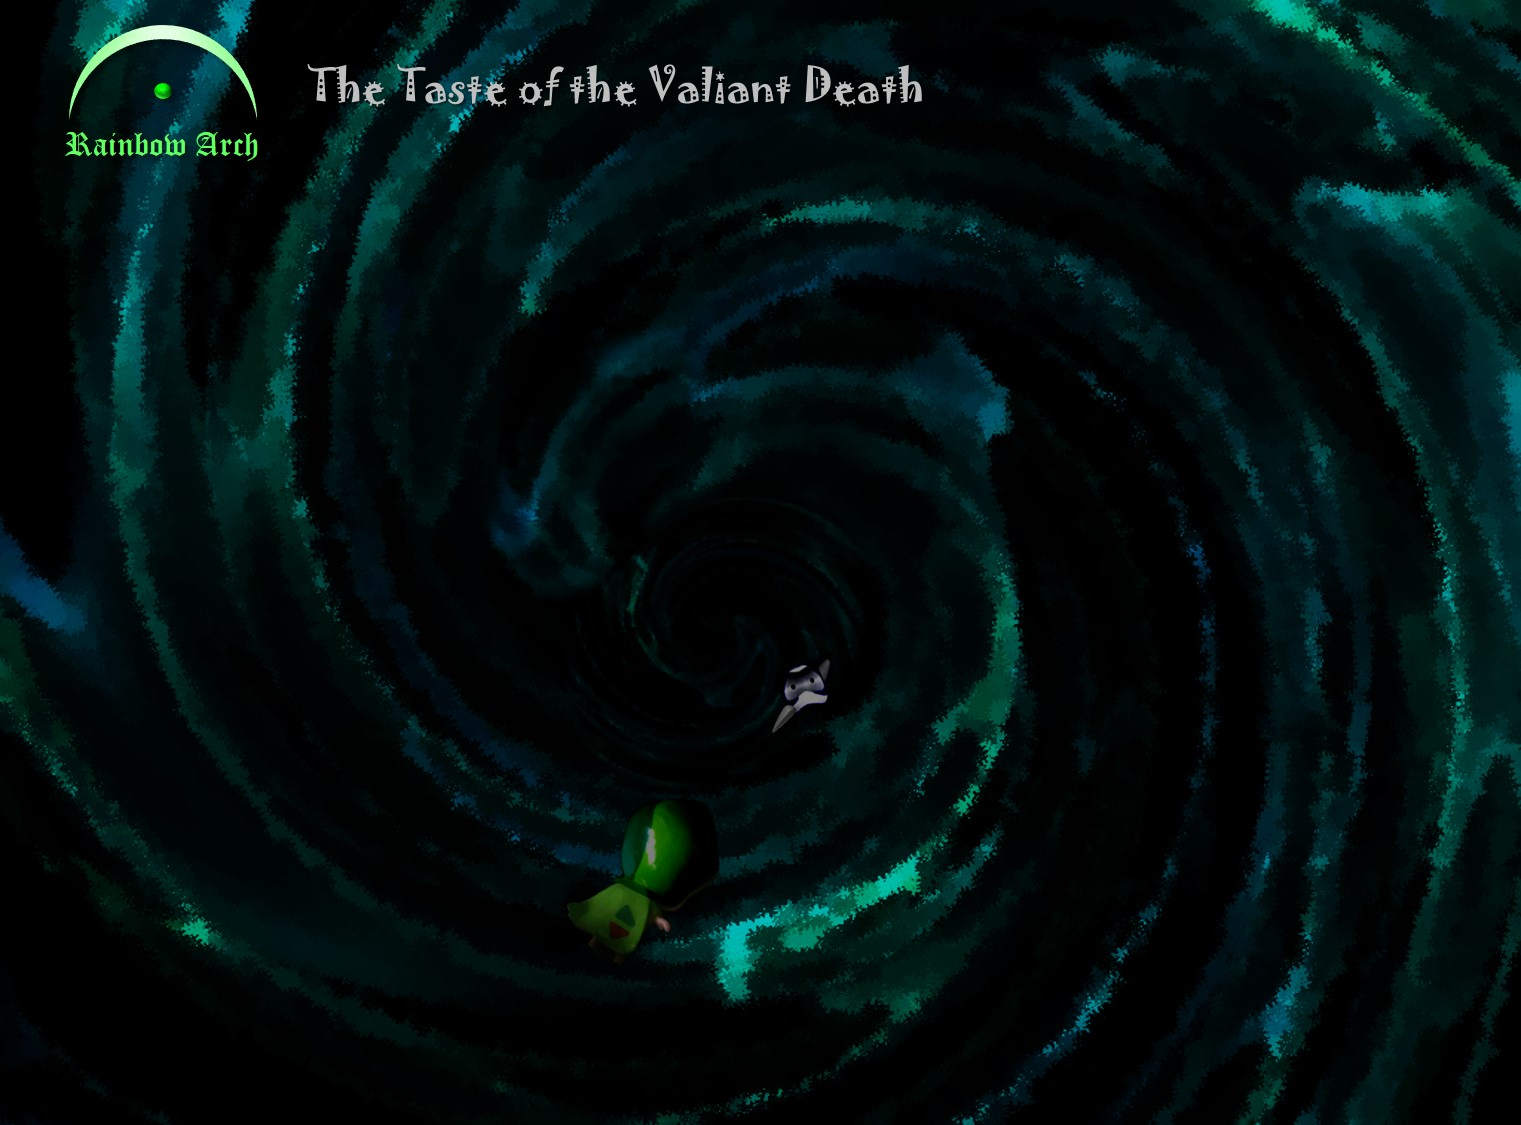 The Taste of the Valiant Death